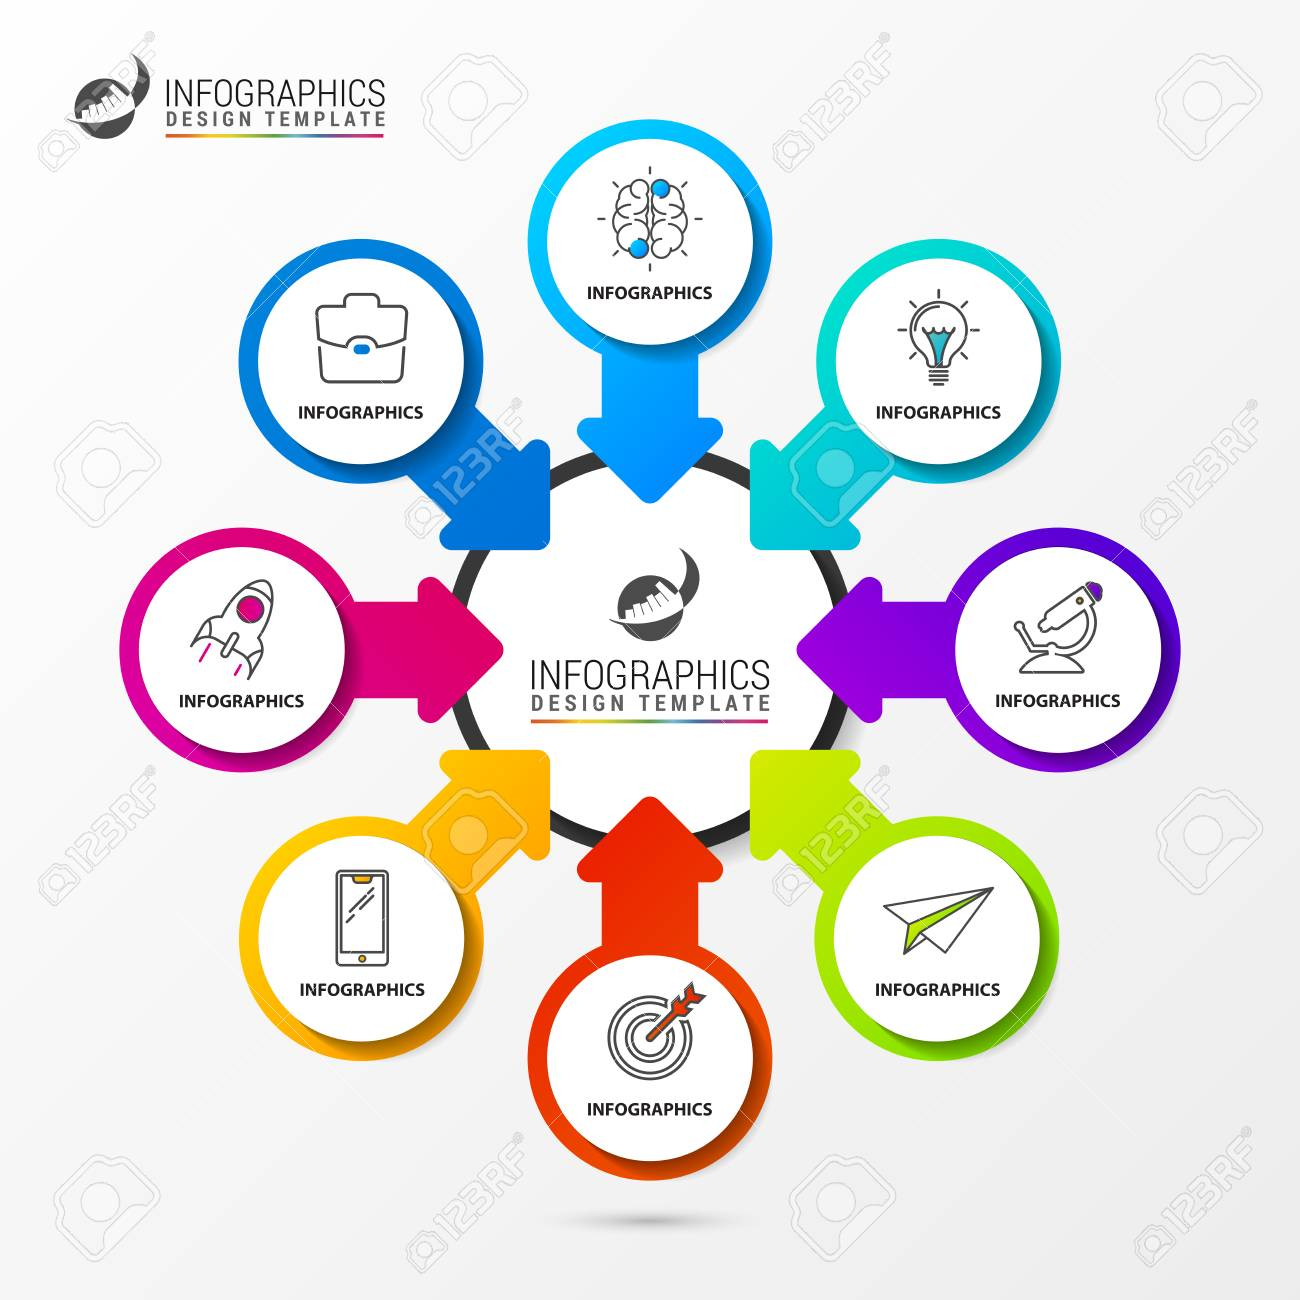 Infographic Design Template Organization Chart With Steps Vector